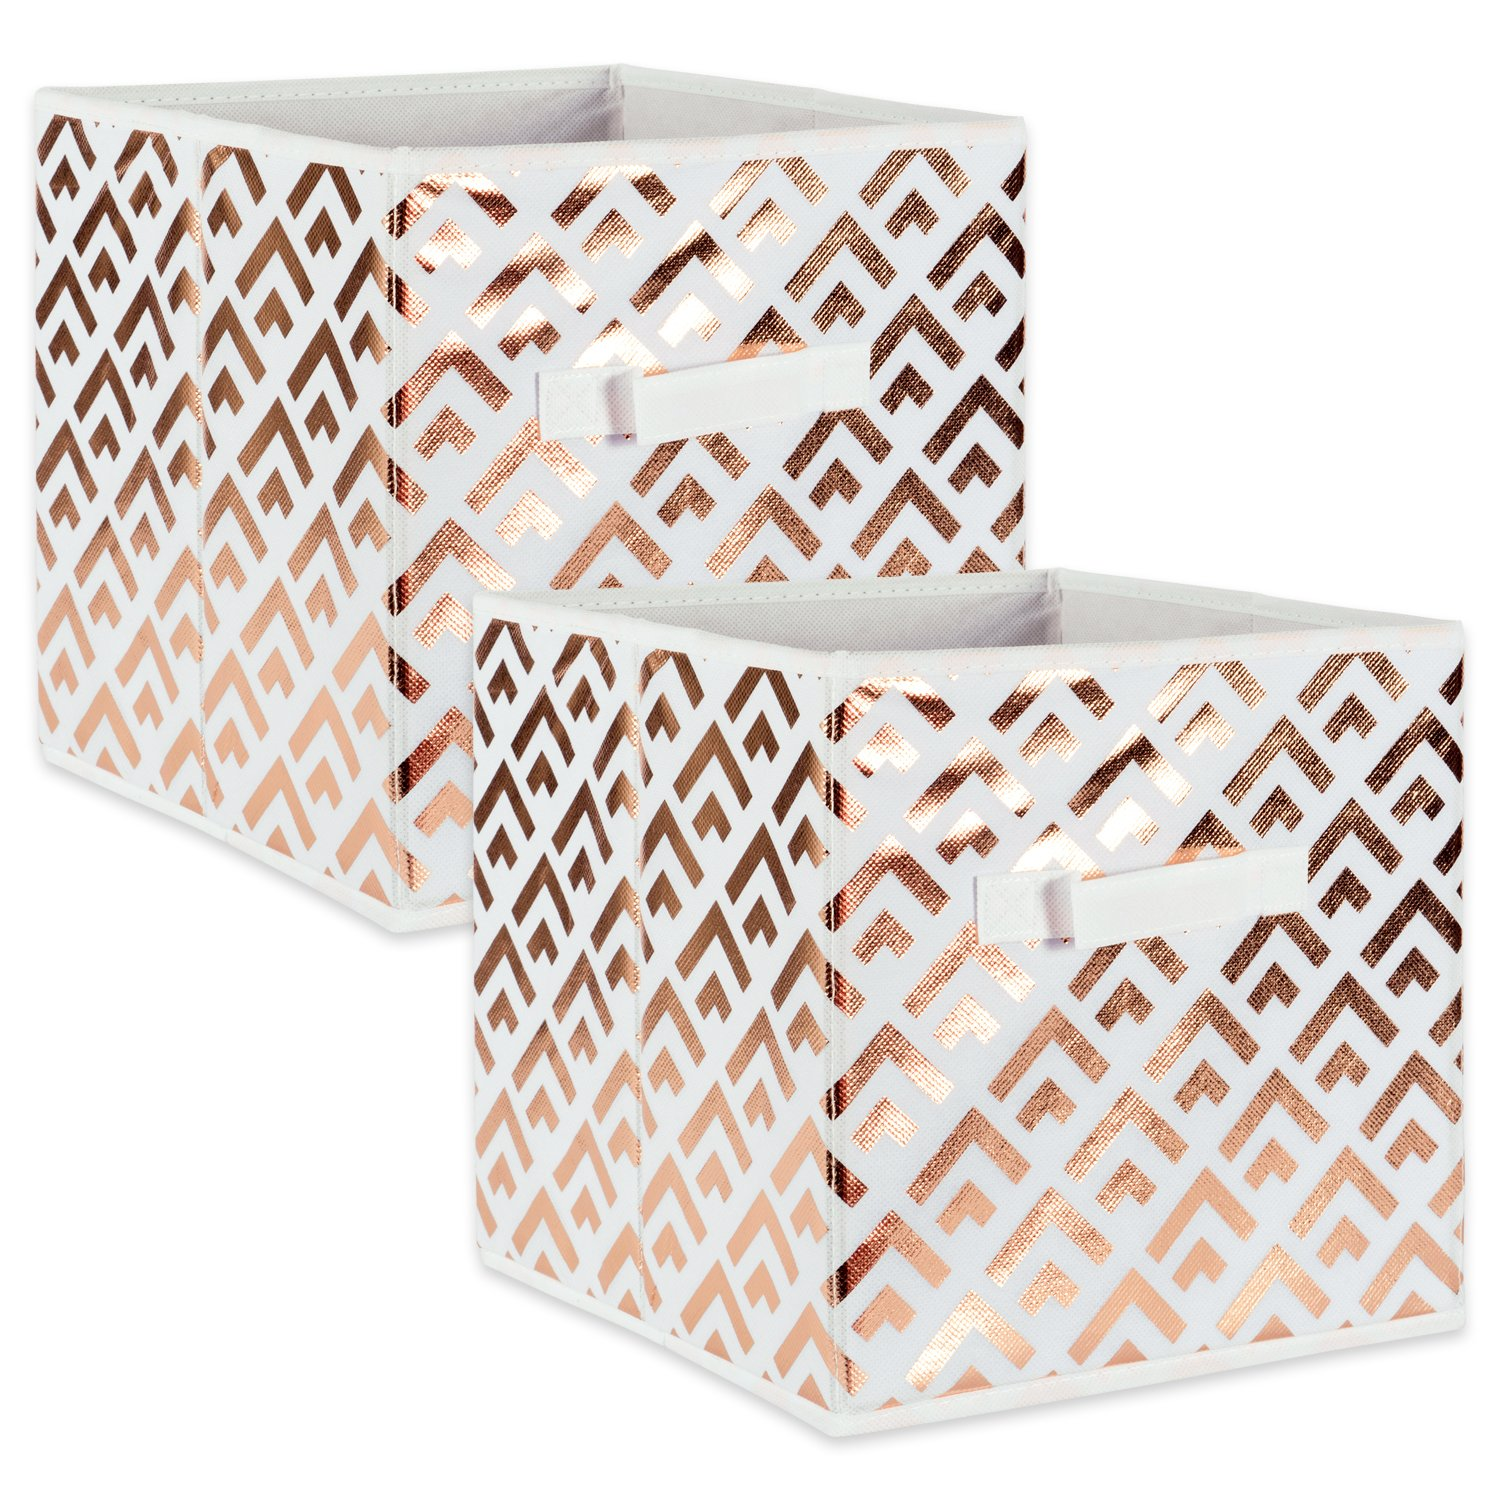 "DII Fabric Storage Bins for Nursery, Offices, & Home Organization, Containers Are Made To Fit Standard Cube Organizers (11x11x11"") Double Diamond Copper on White - Set of 2"